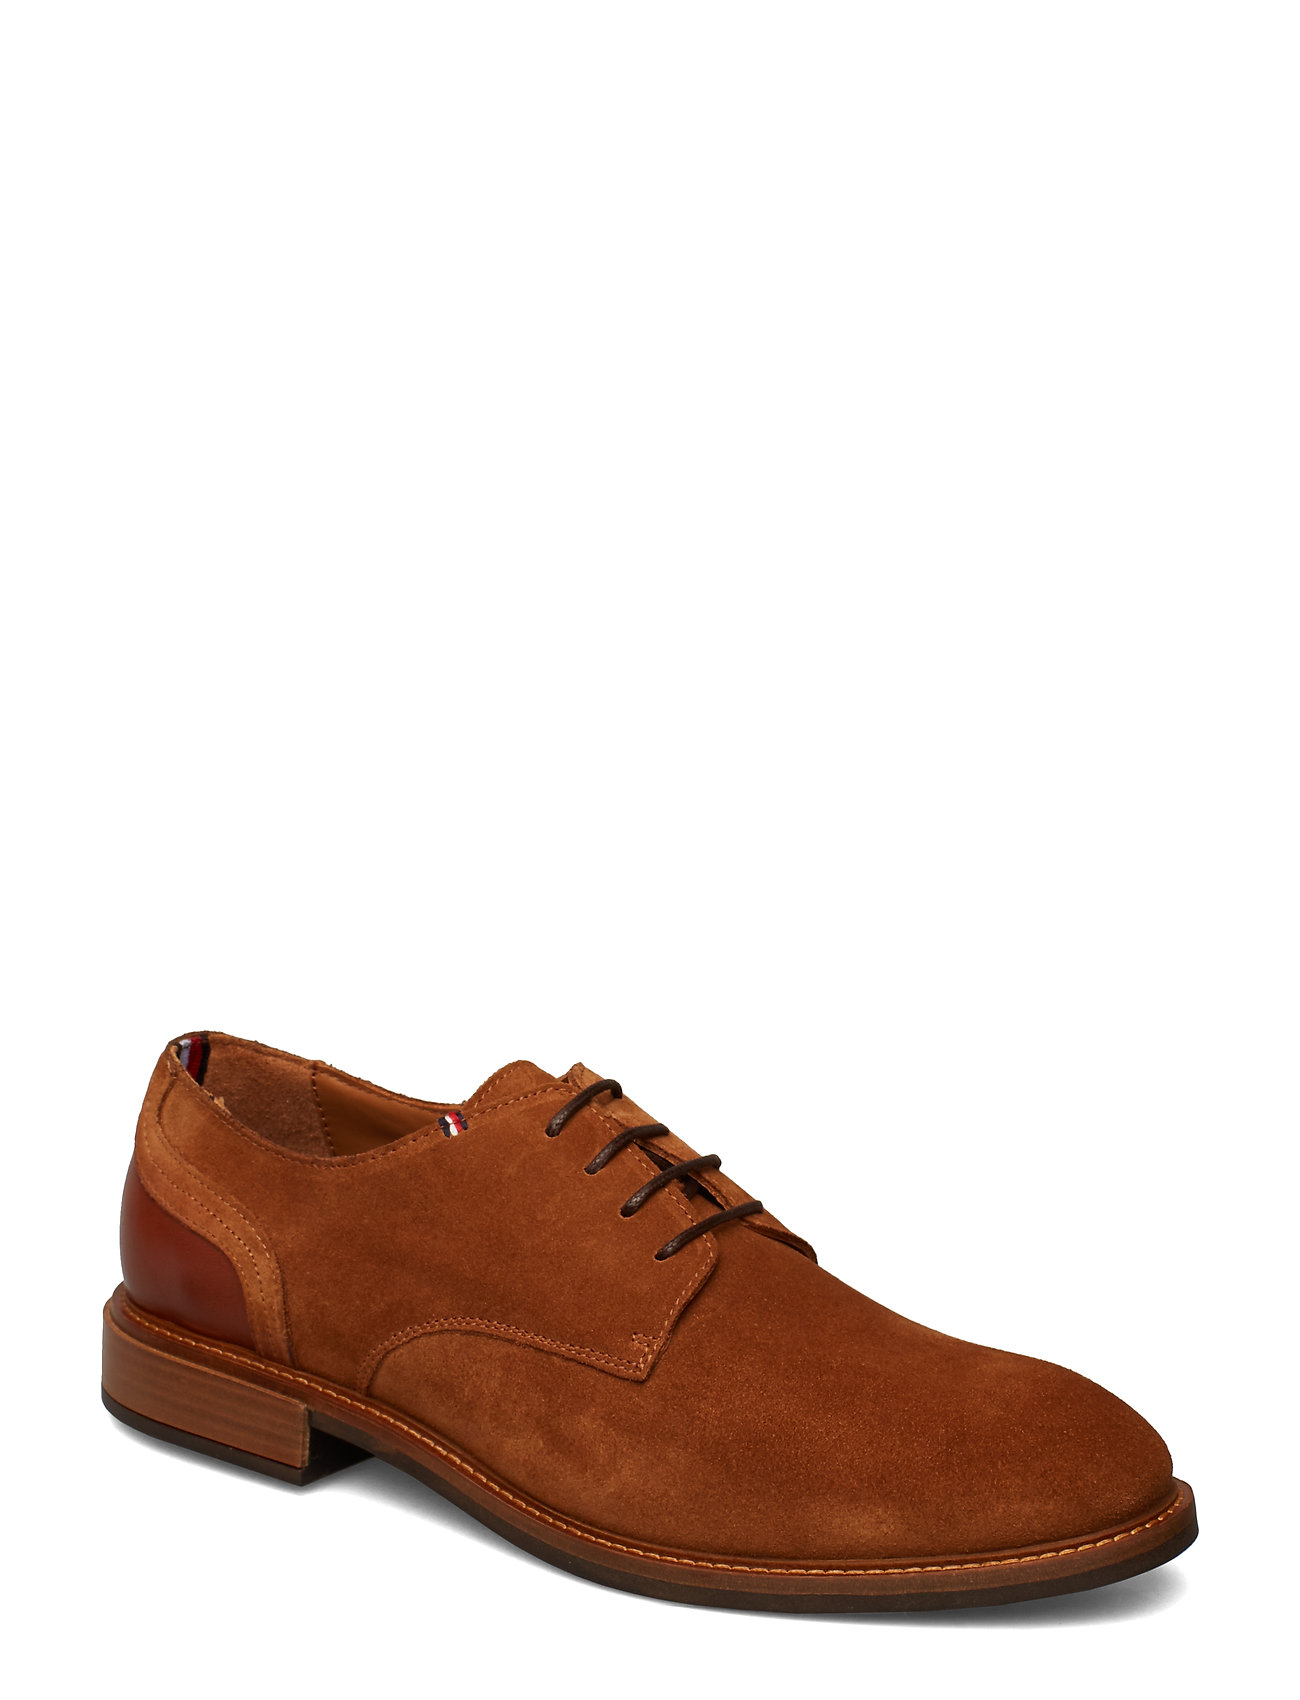 TOMMY HILFIGER Roderick 1c Shoes Business Laced Shoes Lace-Ups Braun TOMMY HILFIGER